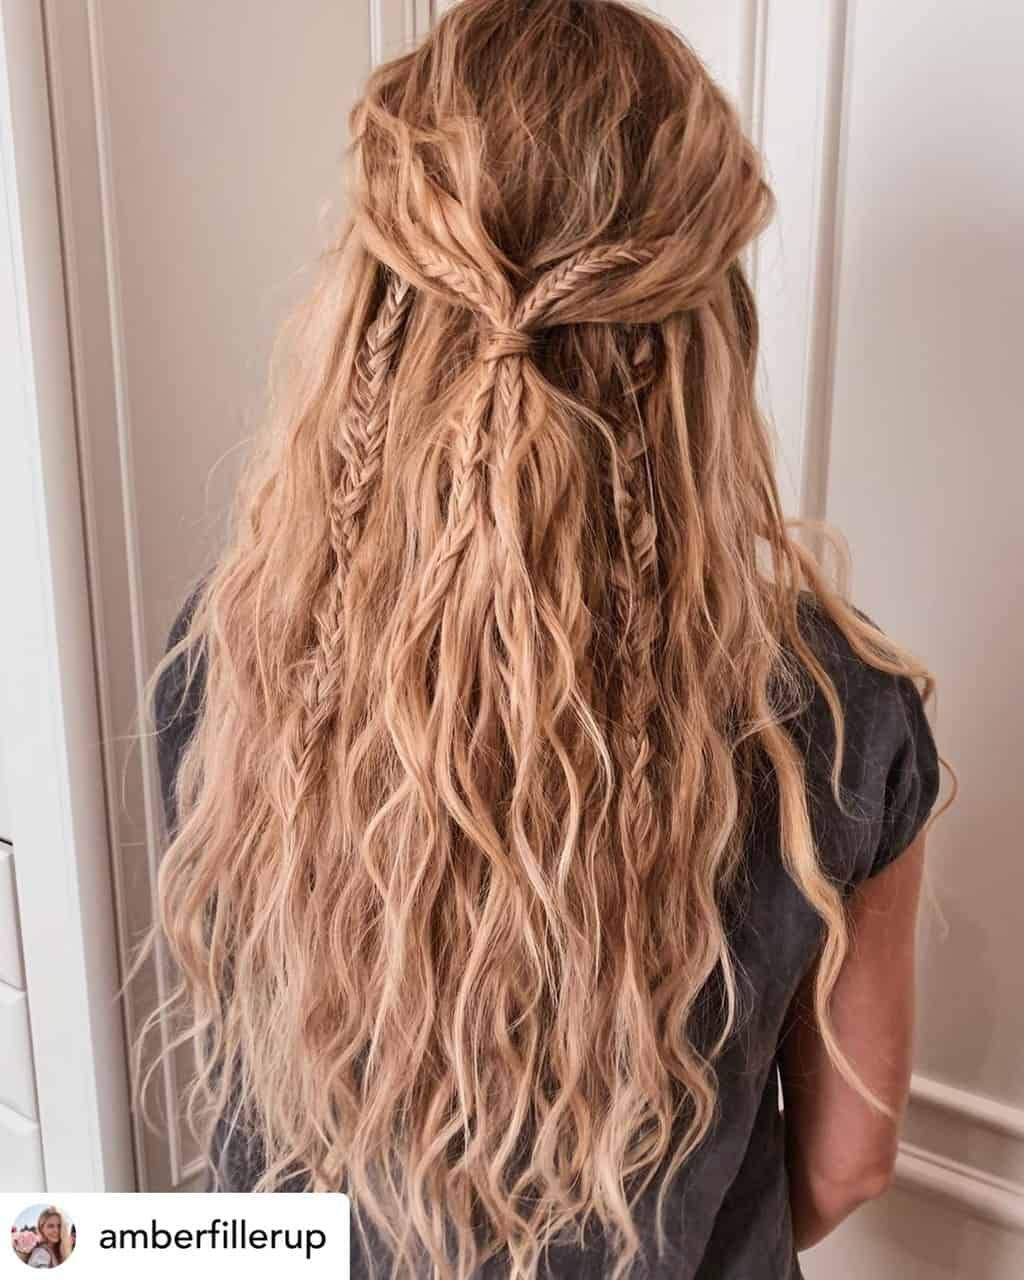 15 Ridiculously Cute Summer Hairstyles Step By Step Tutorials Included In 2020 Easy Summer Hairstyles Hair Styles Long Hair Styles